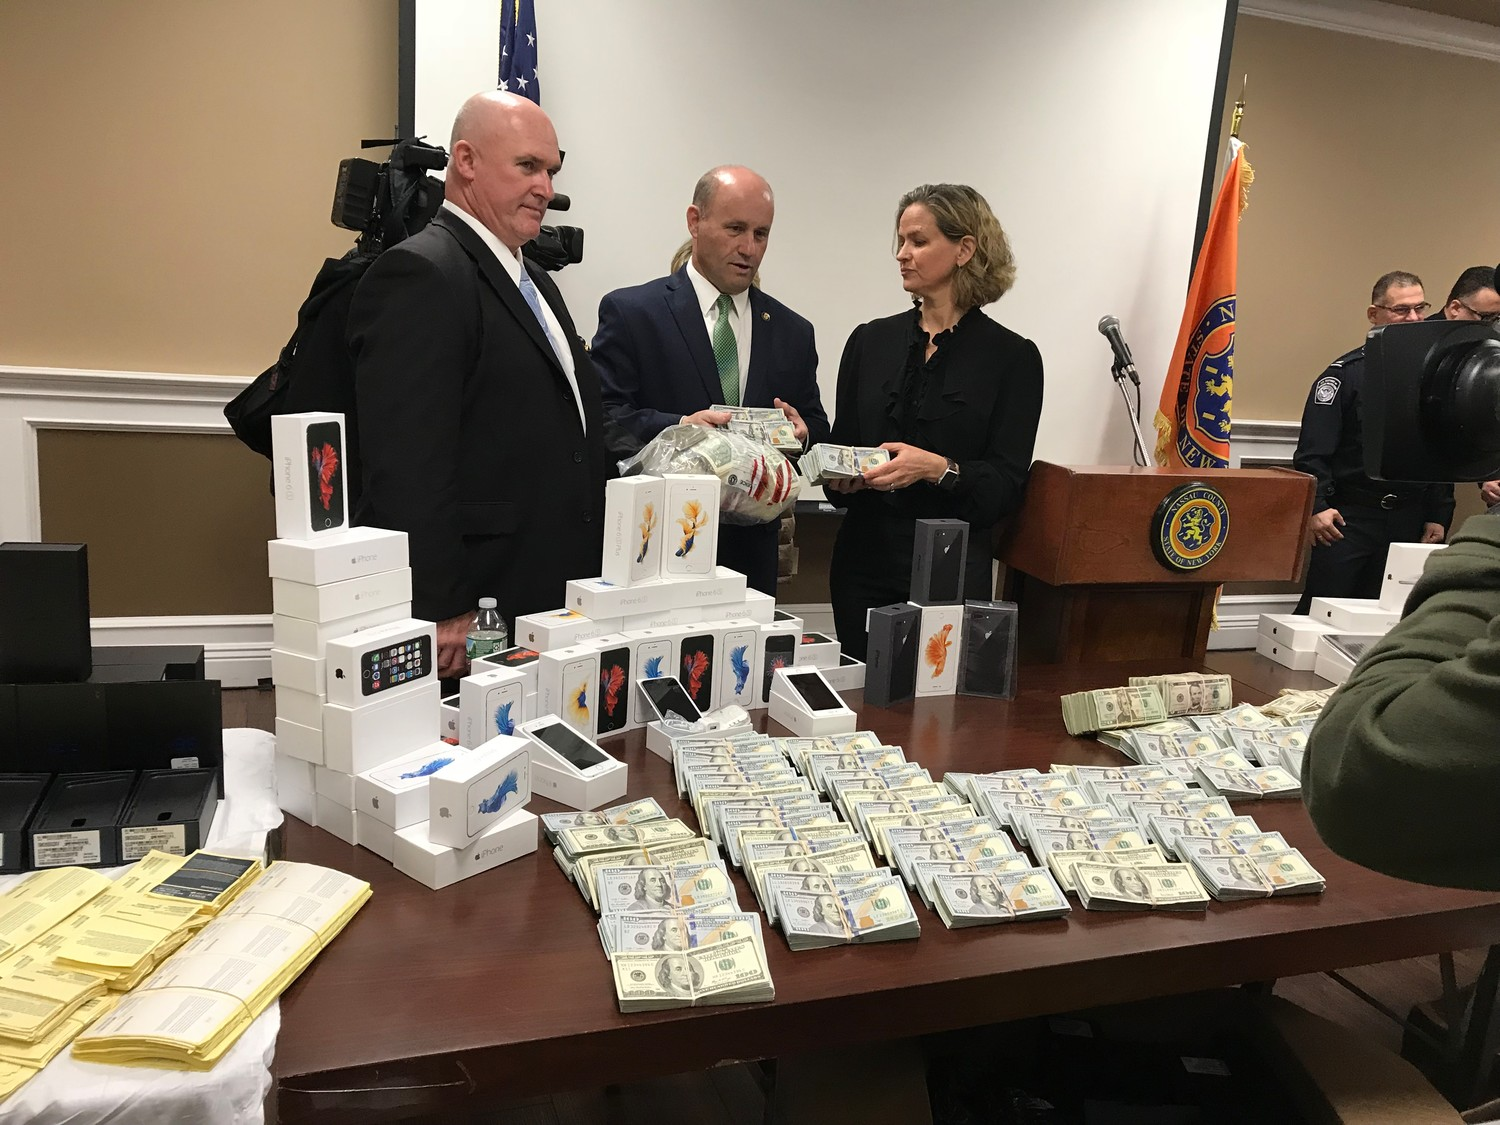 Nassau Police Commissioner Patrick Ryder, County Executive Laura Curran and Commanding Officer of the Asset Forfeiture Bureau Det. Lt. James Watson examine some of the $1.1 million in cash seized from the counterfeiting operation of the two Wantagh men who were arrested today.